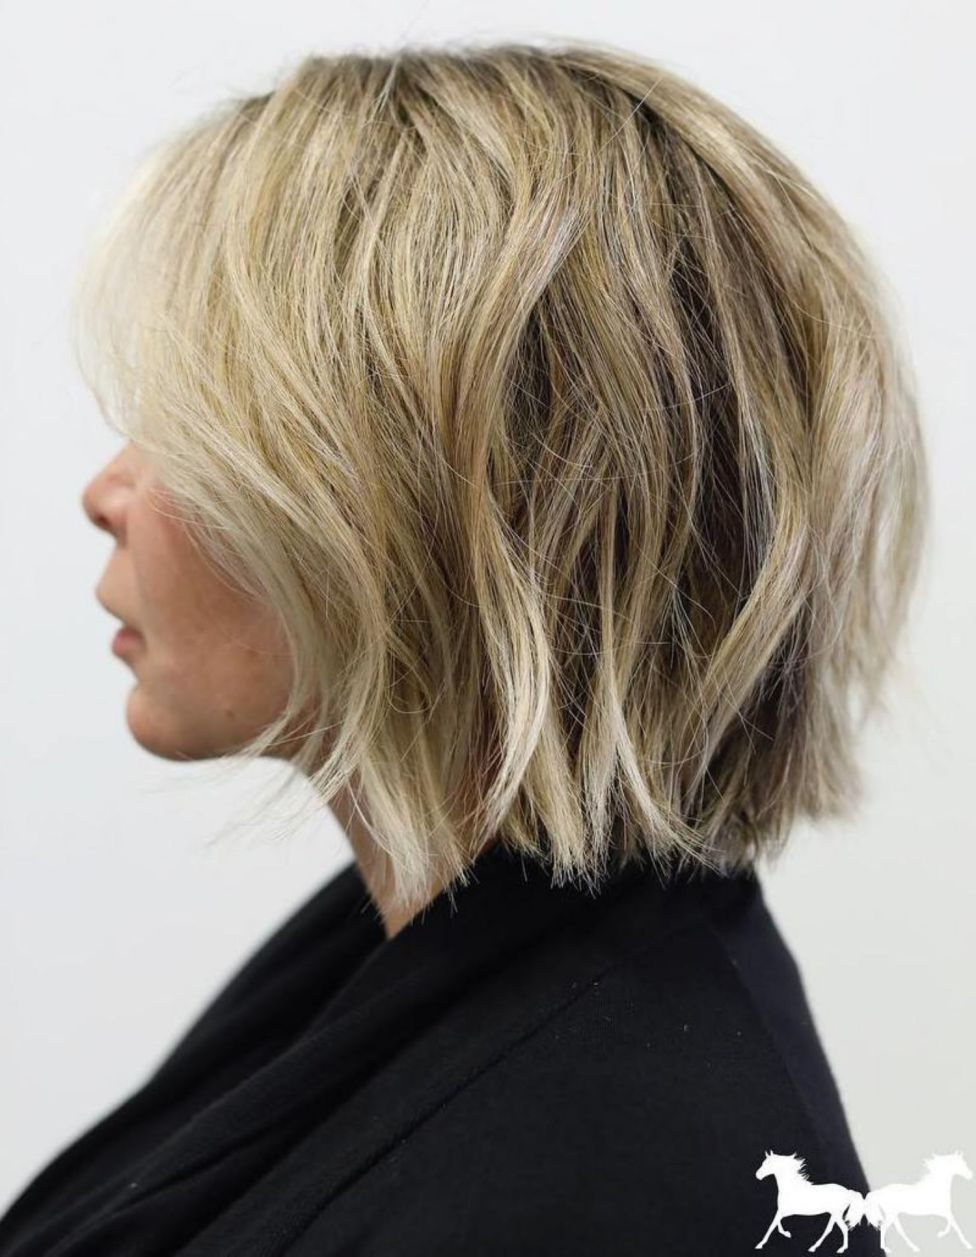 70 Fabulous Choppy Bob Hairstyles In 2018 | Short Hair Cut Intended For Choppy Tousled Bob Haircuts For Fine Hair (View 17 of 20)